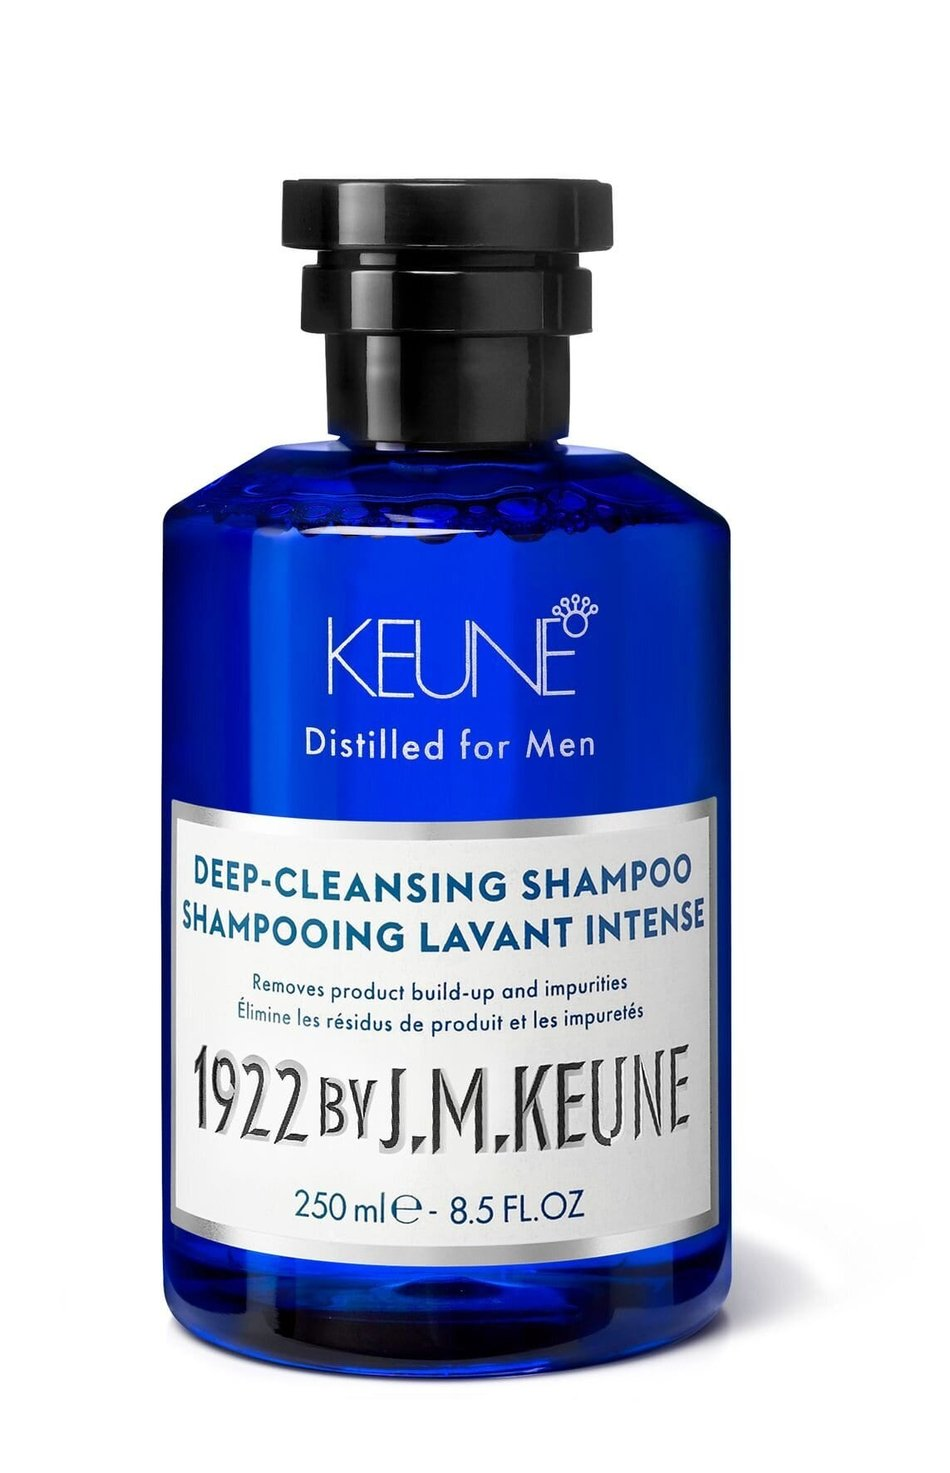 1922 BY J.M. KEUNE DEEP-CLEANSING SHAMPOO